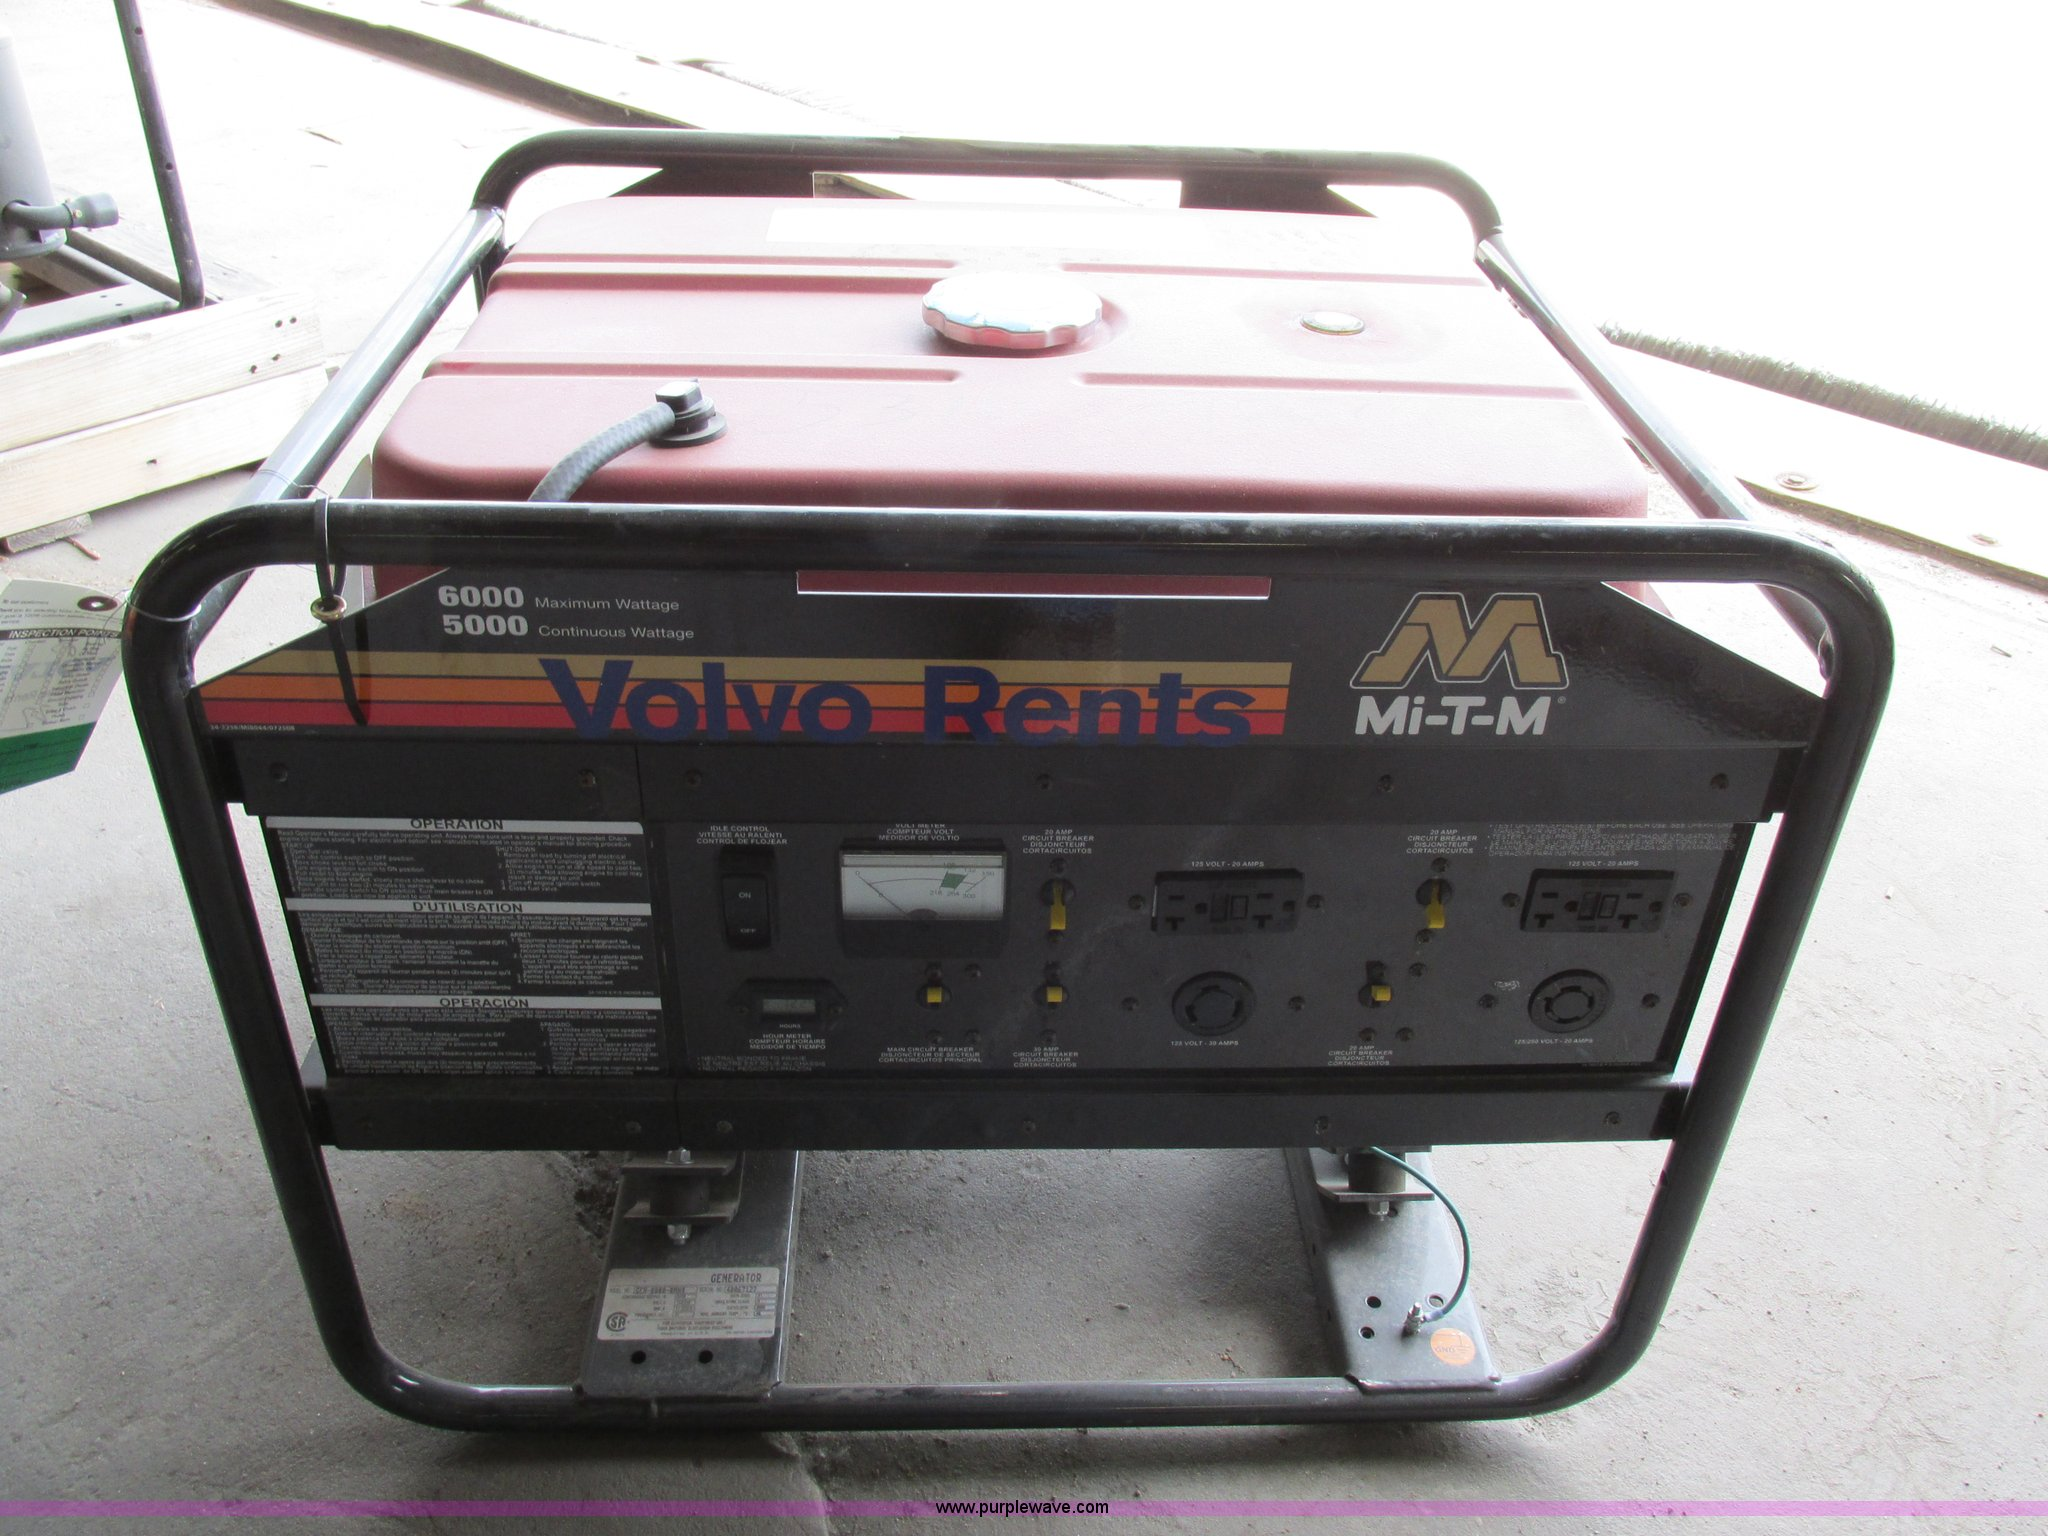 Portable Generator Item Aw9991 Sold August 28 Construct Circuit Breaker Full Size In New Window